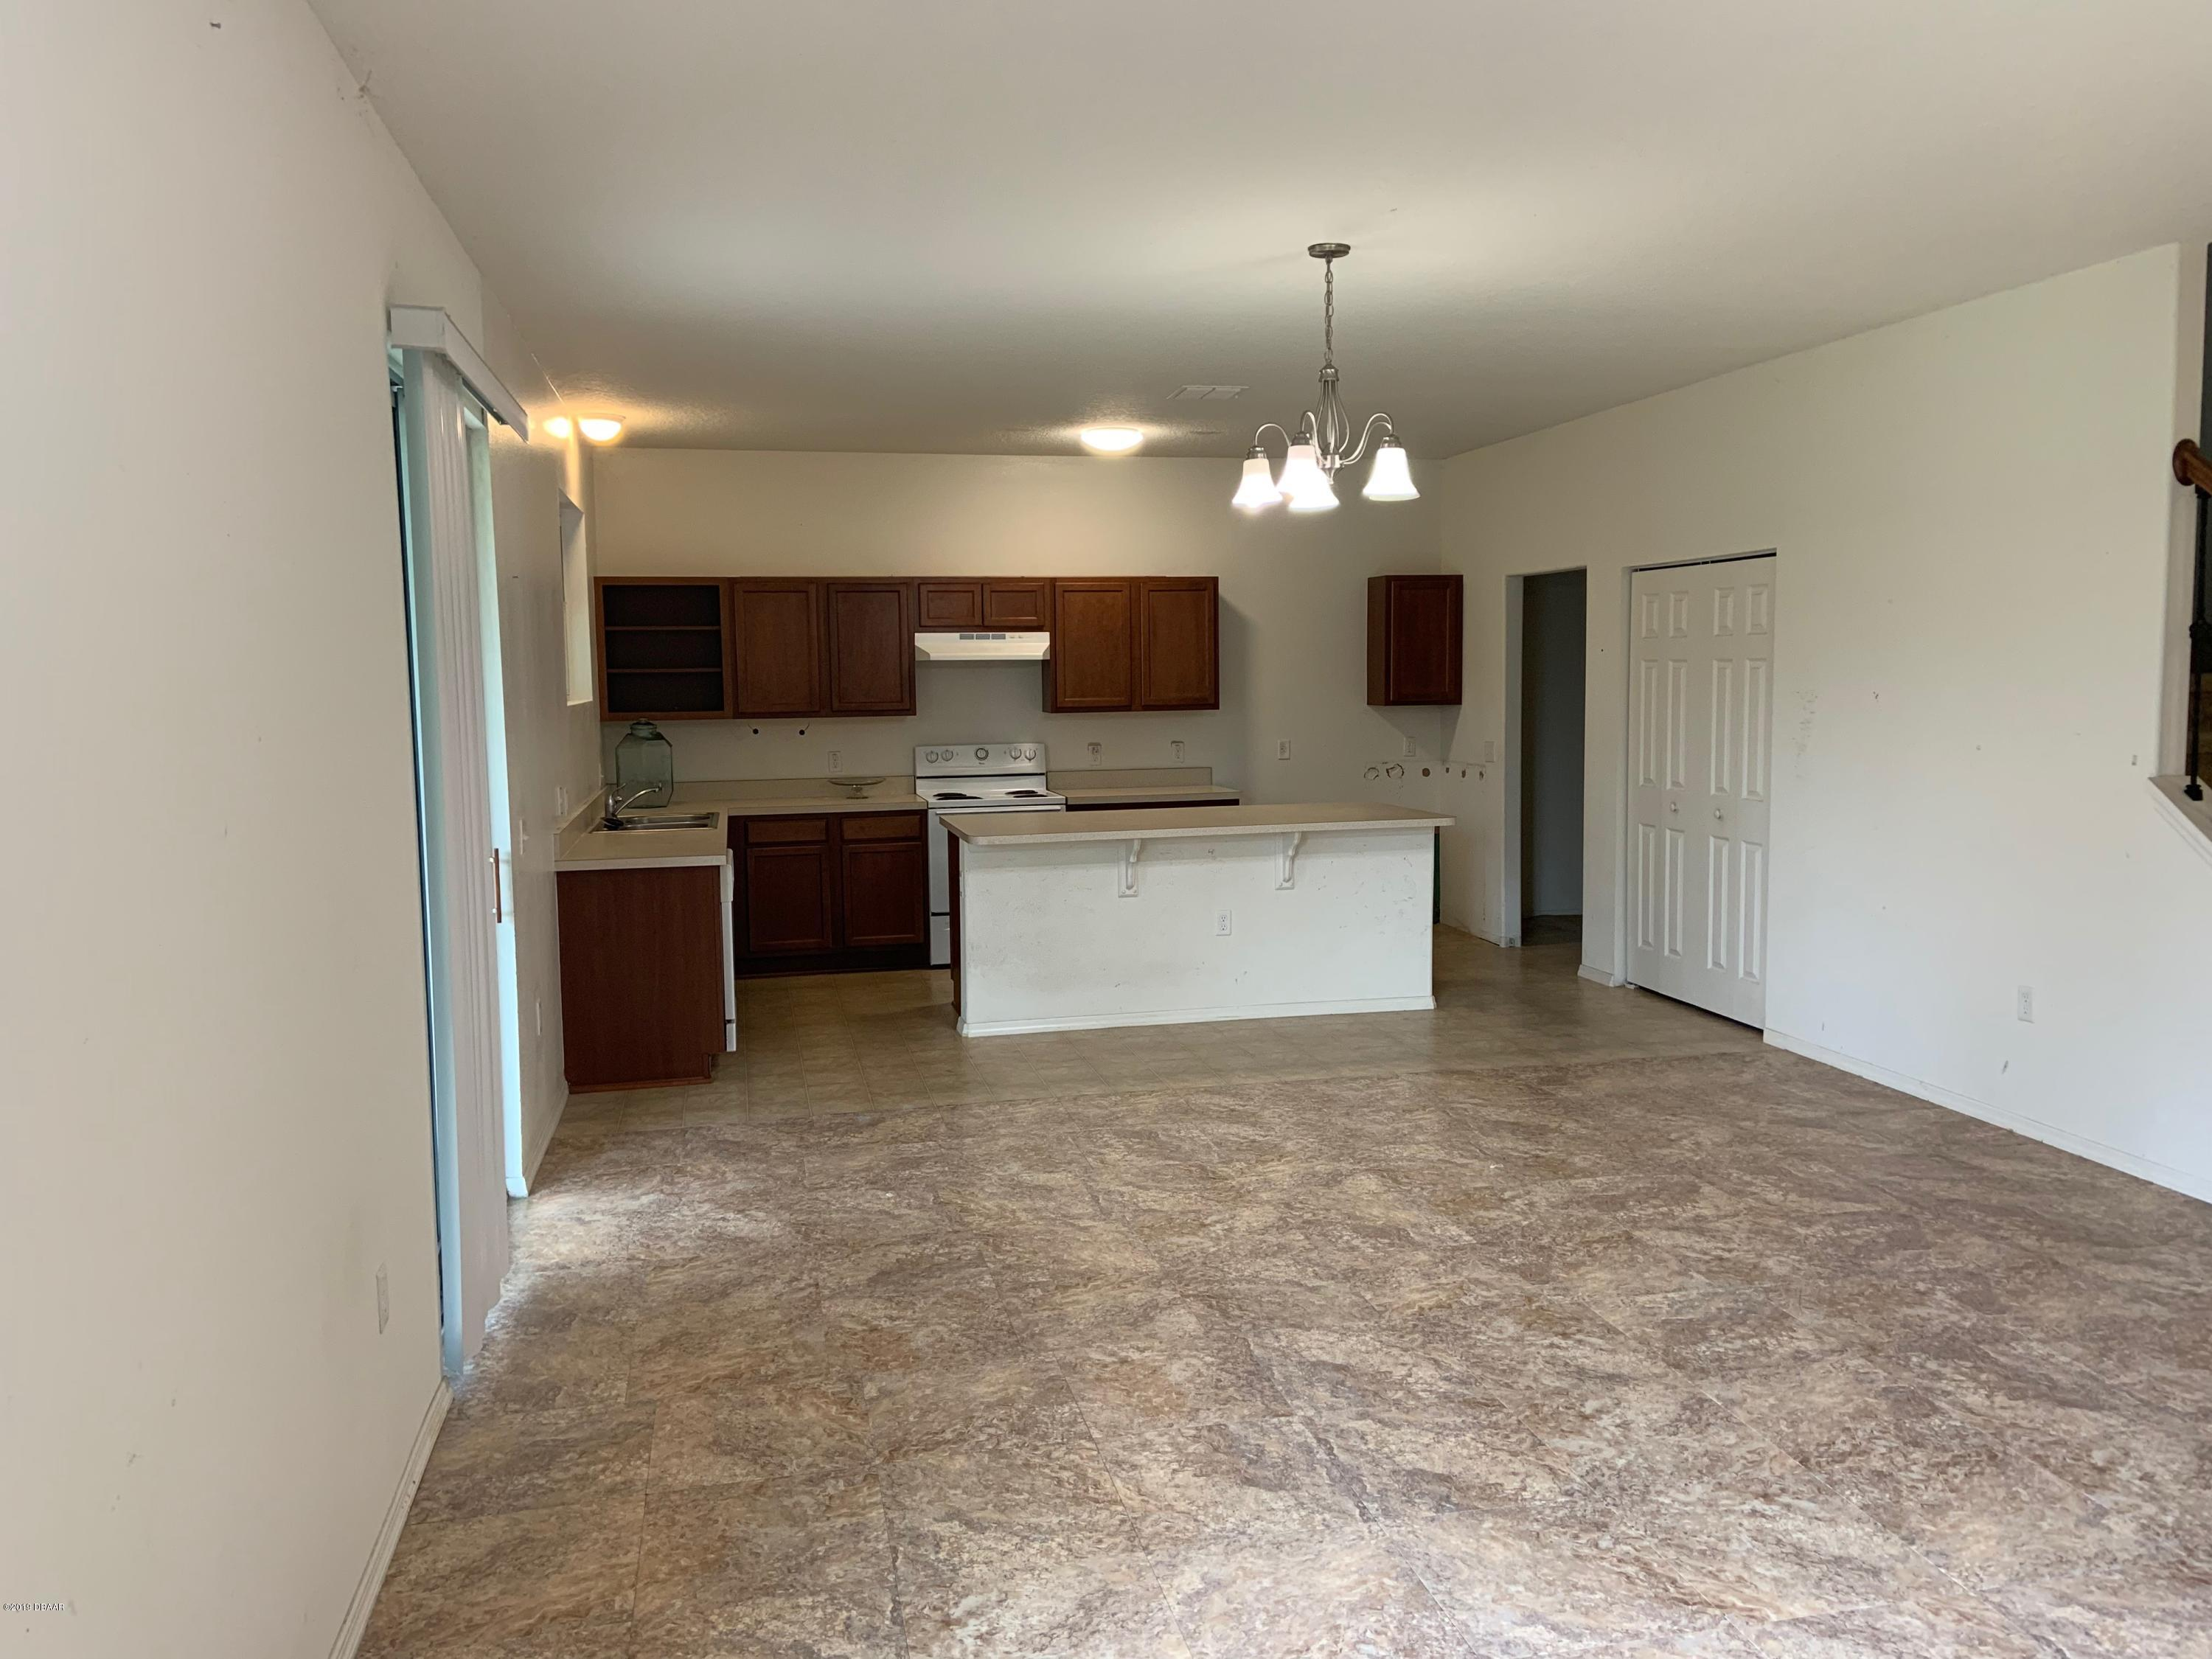 253 Thornberry Branch Daytona Beach - 2